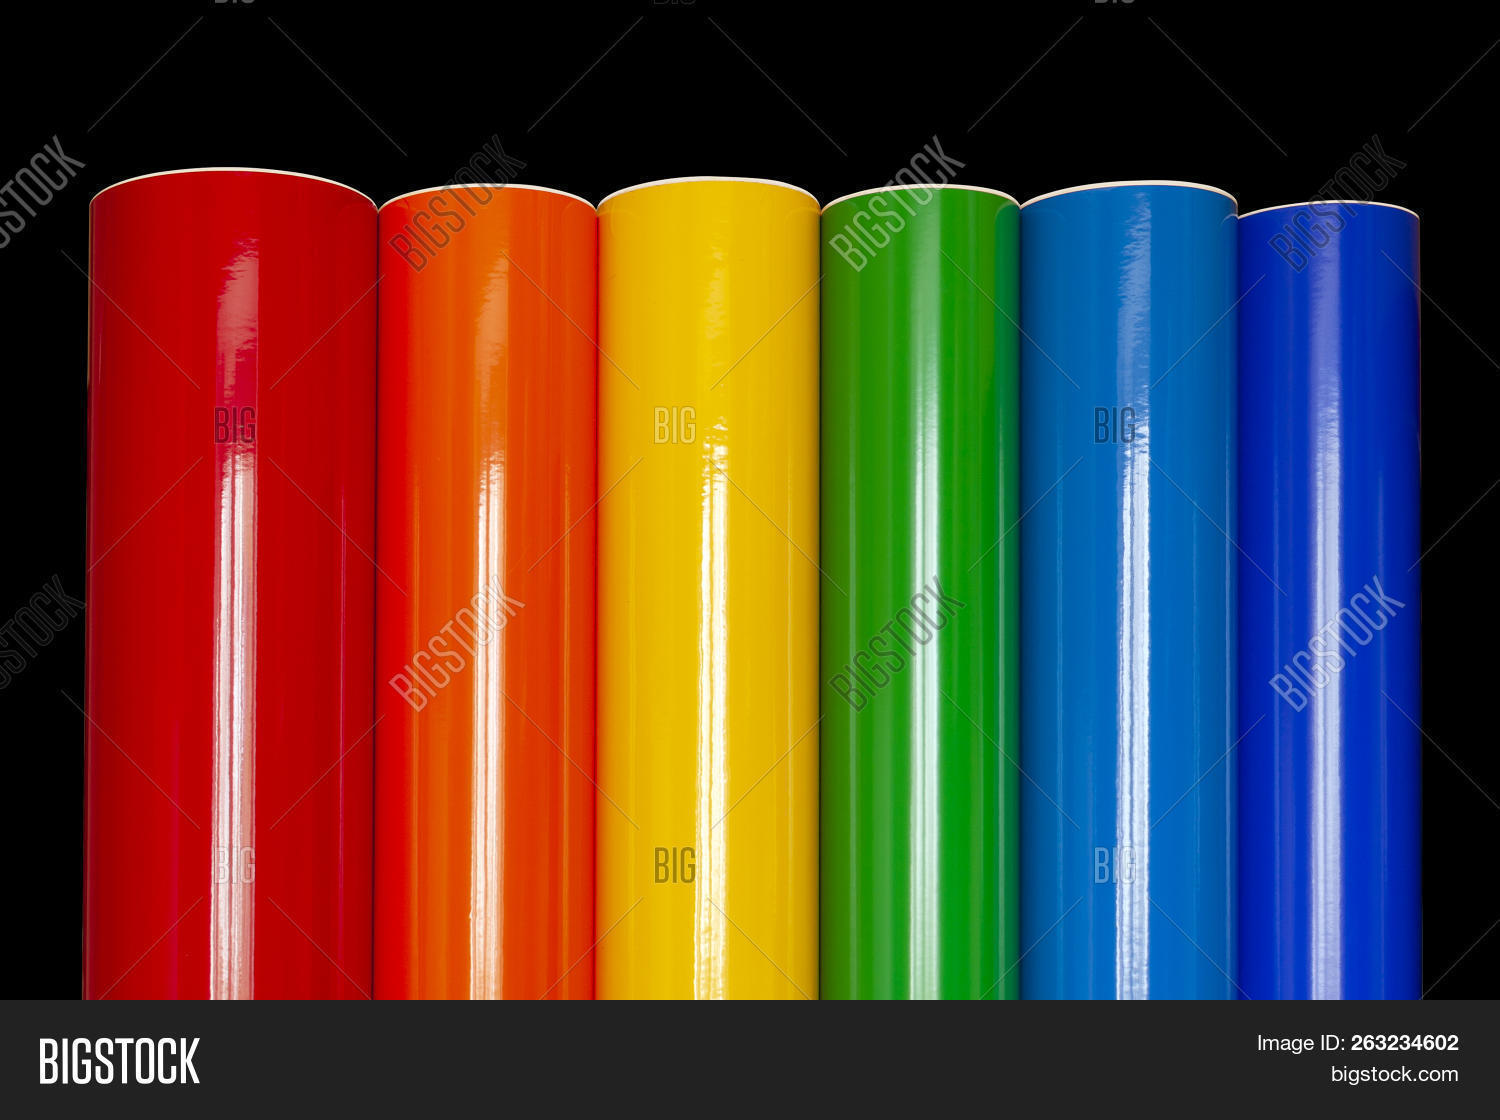 rolls colored vinyl image photo free trial bigstock